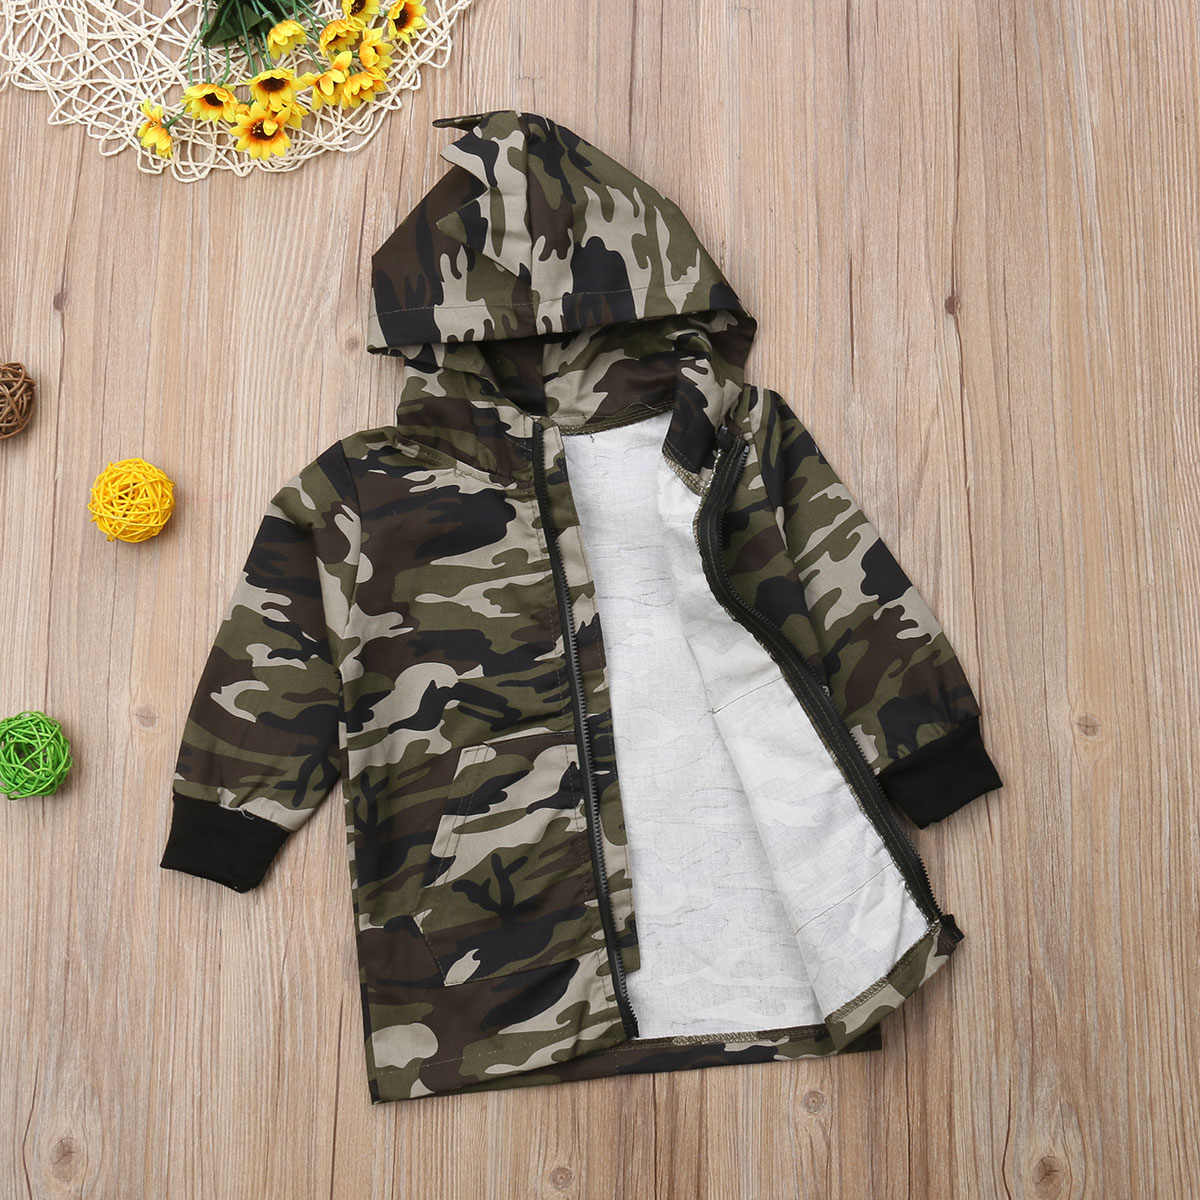 44a3e0d99a30 Detail Feedback Questions about 2018 Brand New Fashion Toddler Kids ...